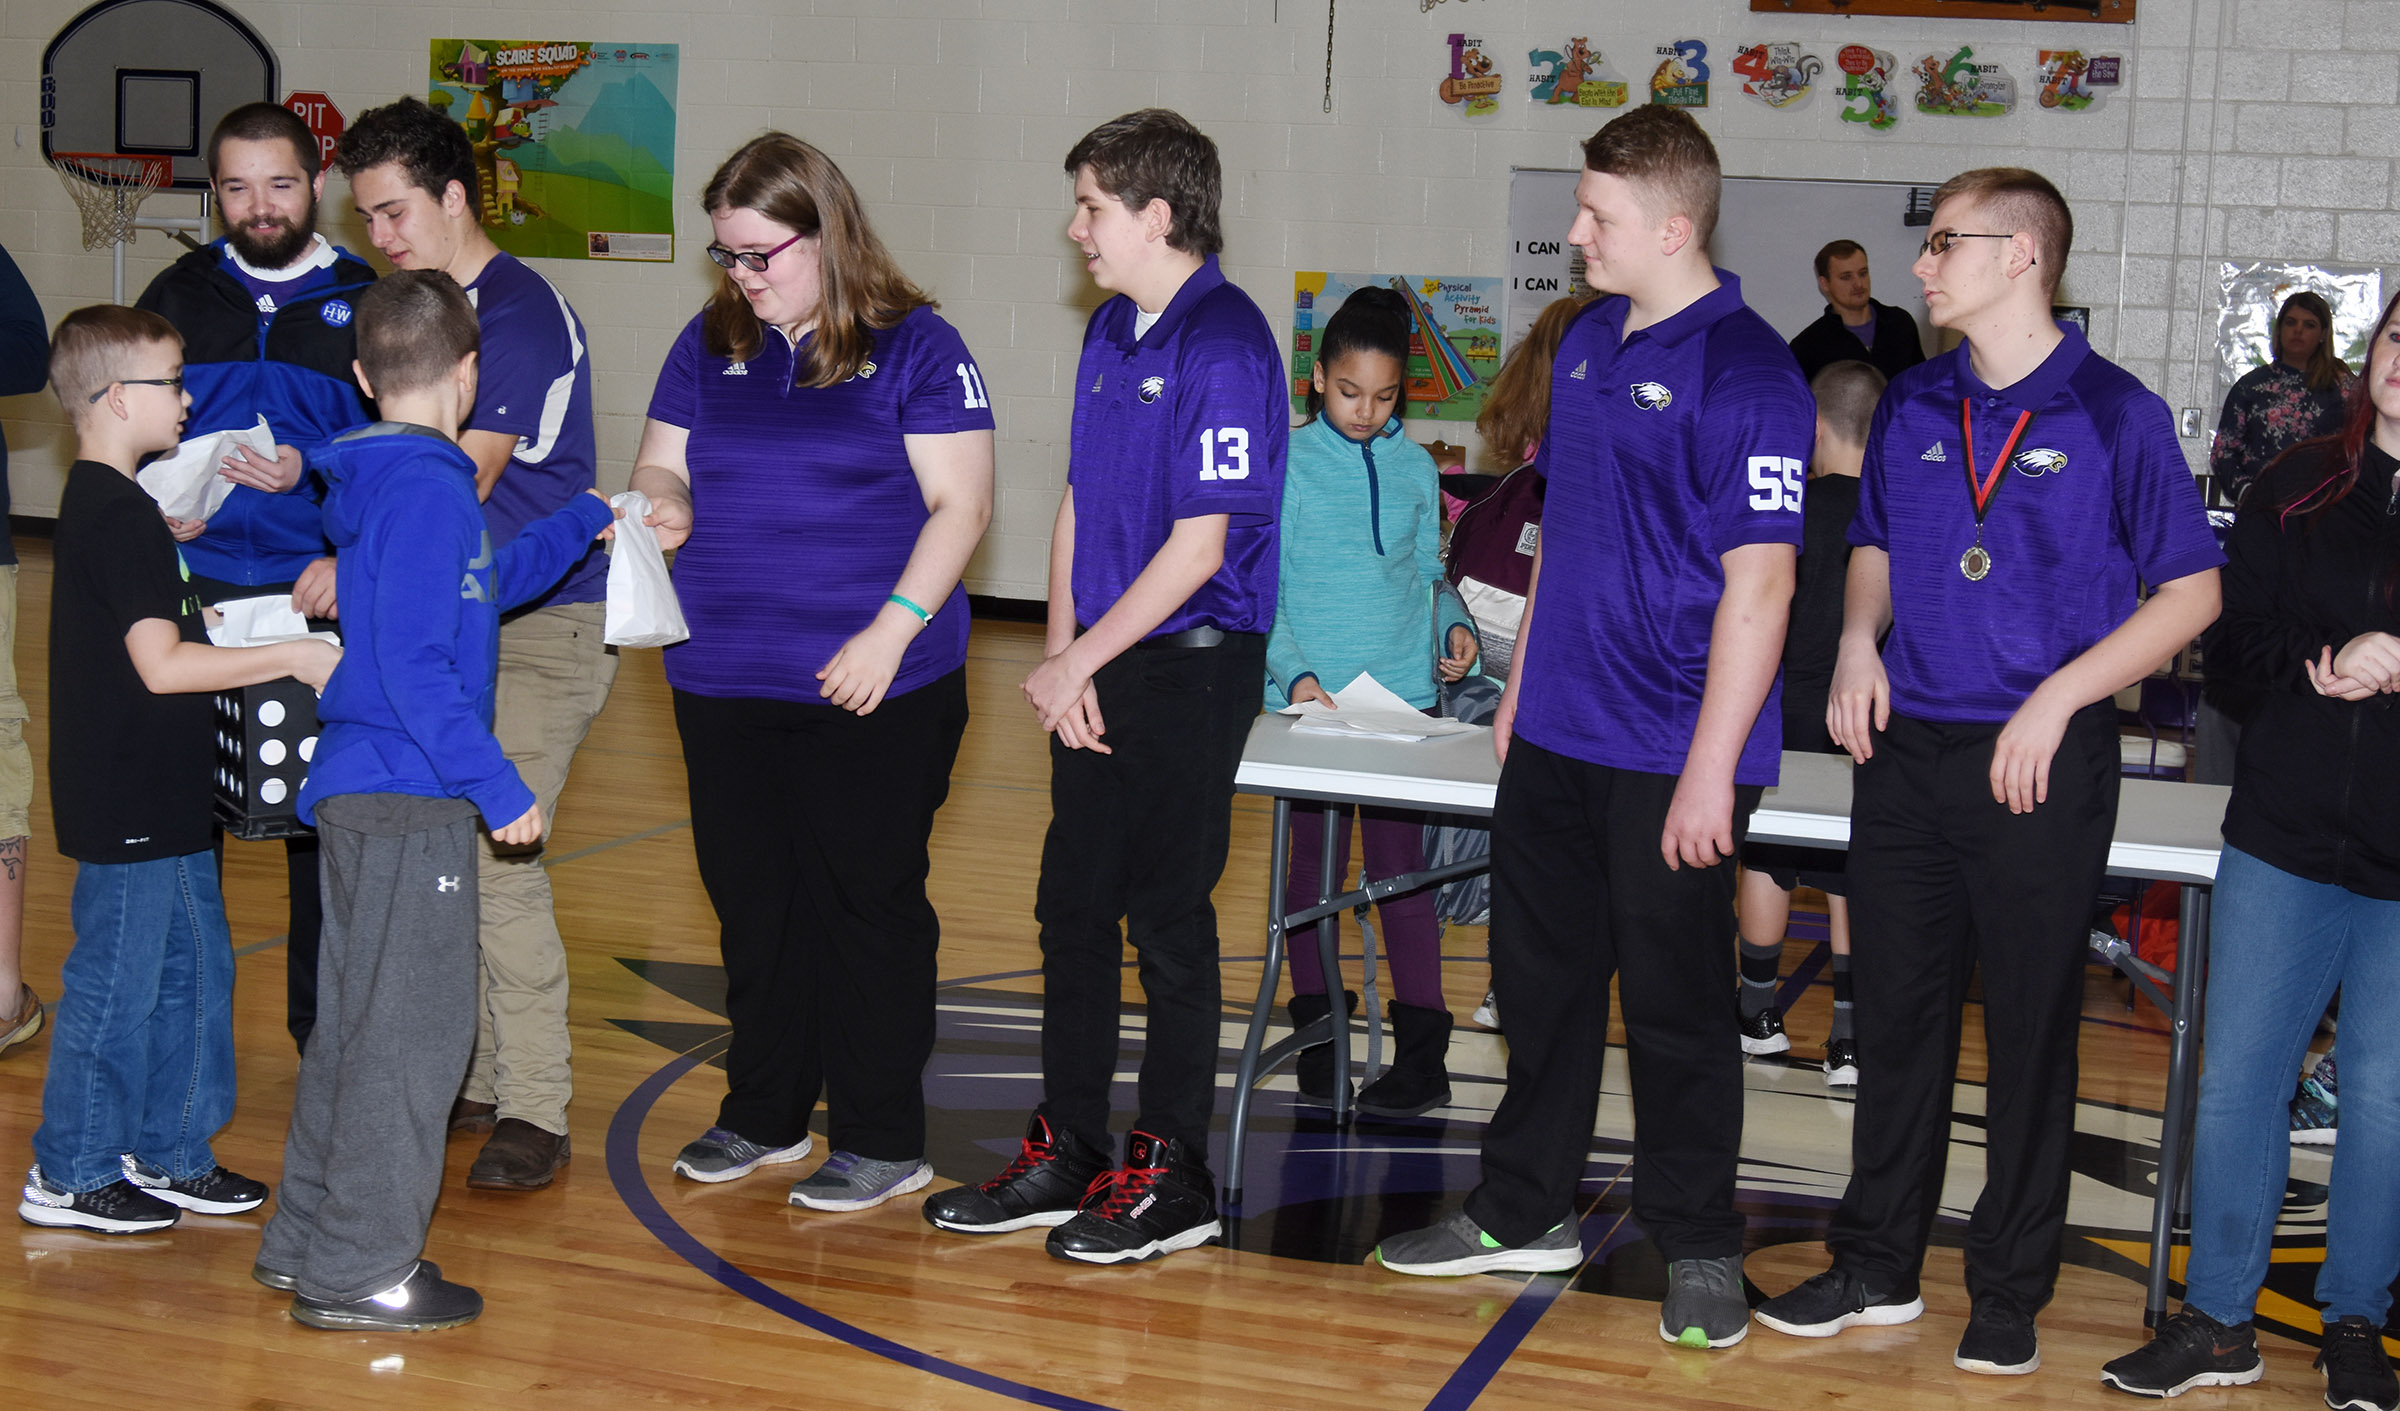 CHS bowling members receive treat bags at the CES assembly on Friday, Feb. 16.